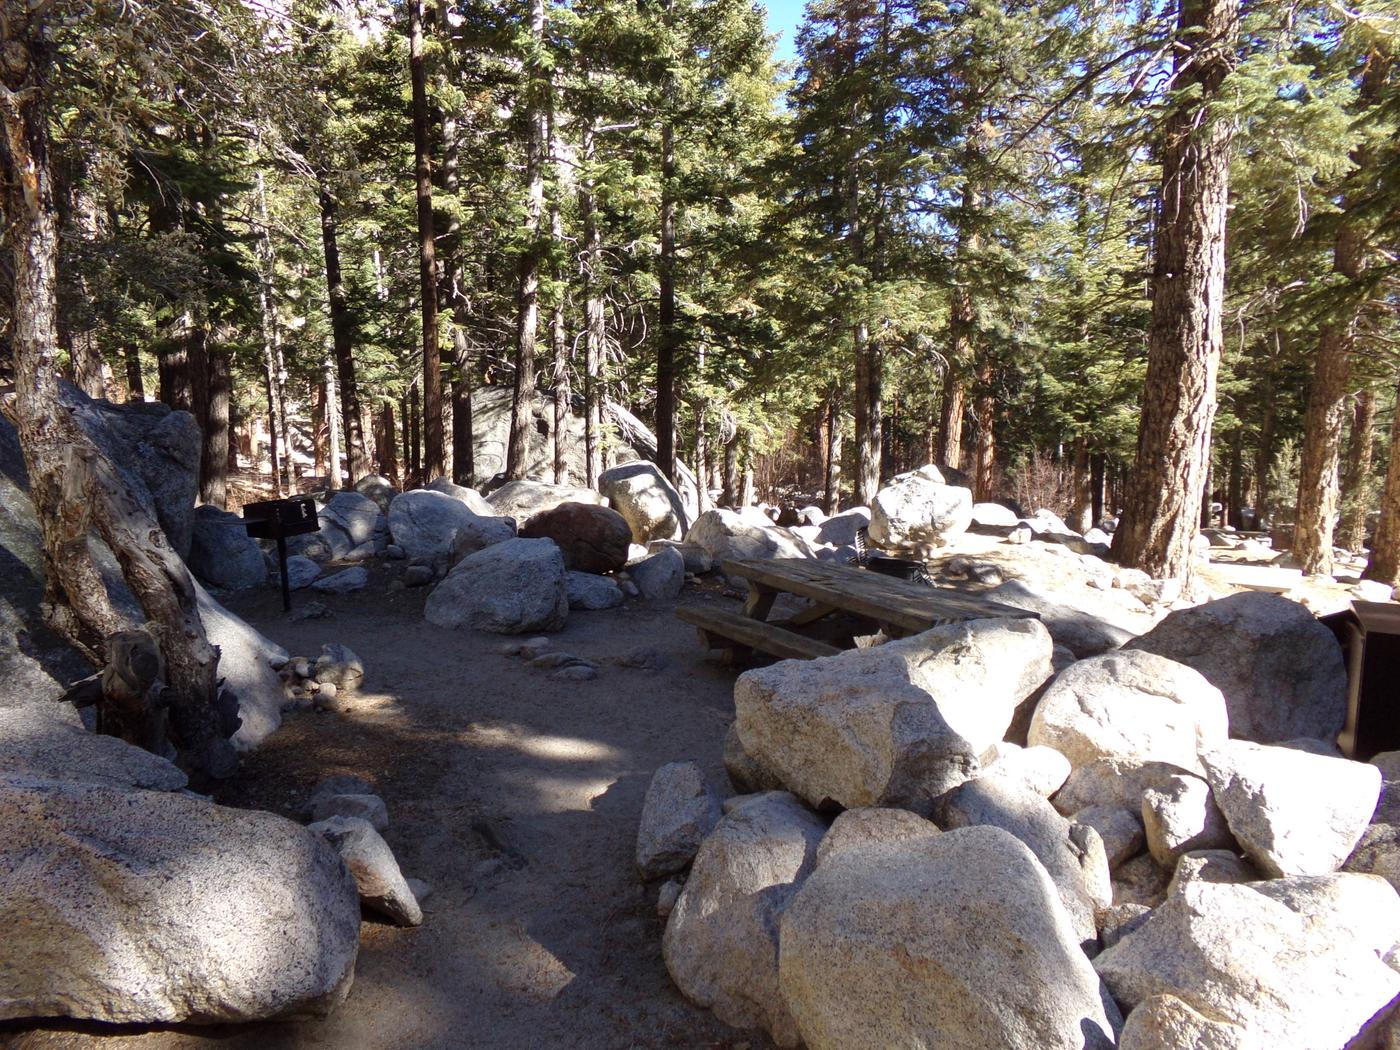 Mt. Whitney Portal Campground site #05 featuring mountain top setting with picnic area and camping space.